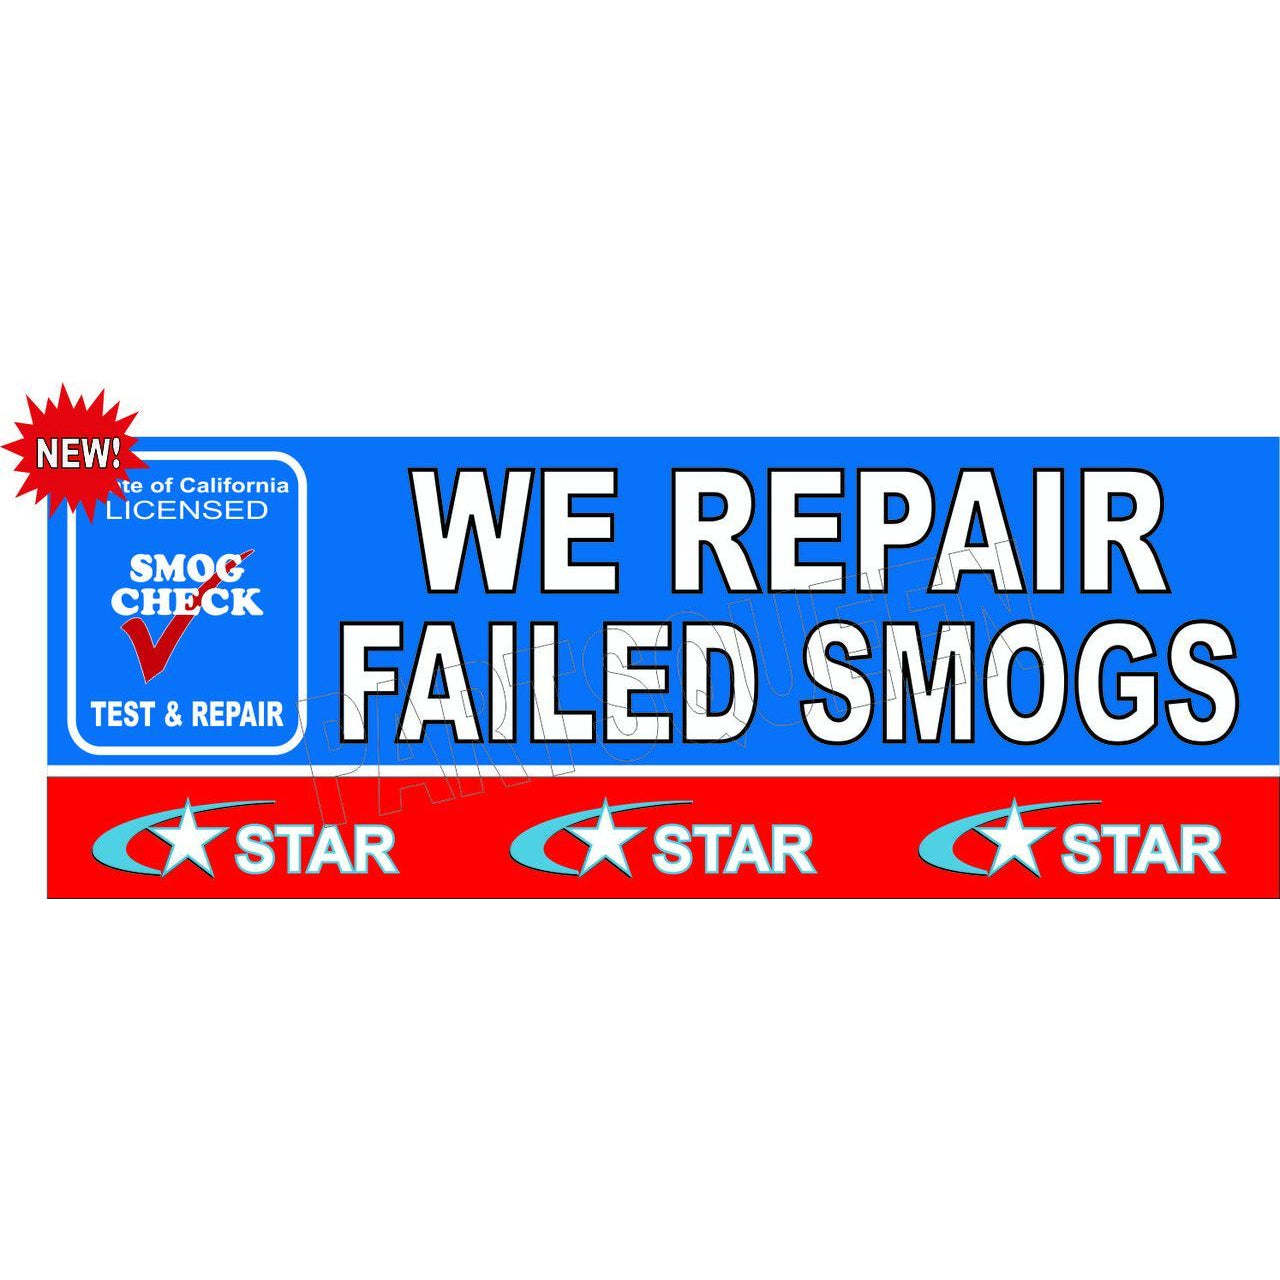 REPAIR FAILED SMOG BANNER # SB941